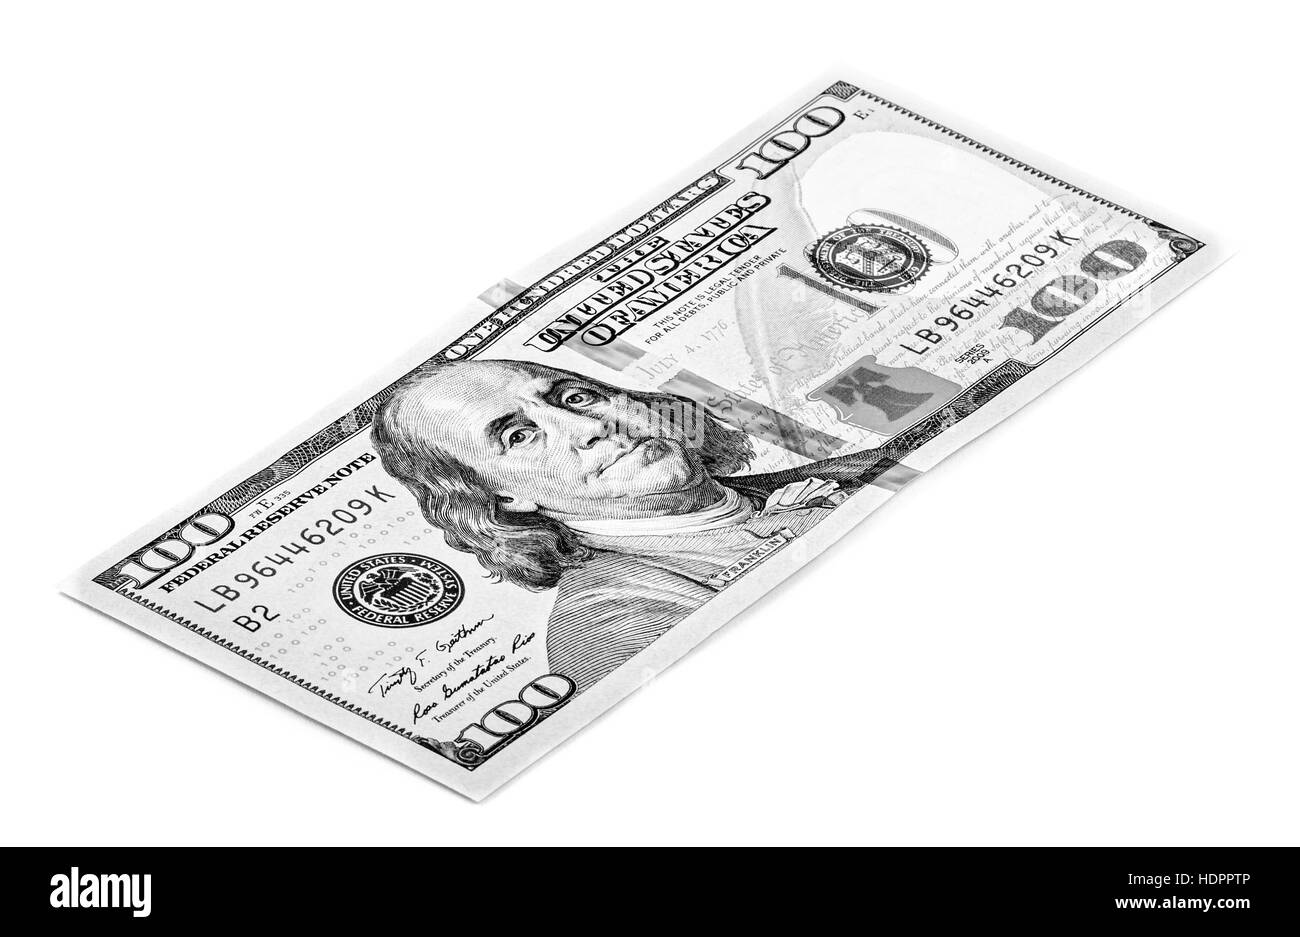 Hundred dollar bill isolated on white background, in black and white - Stock Image